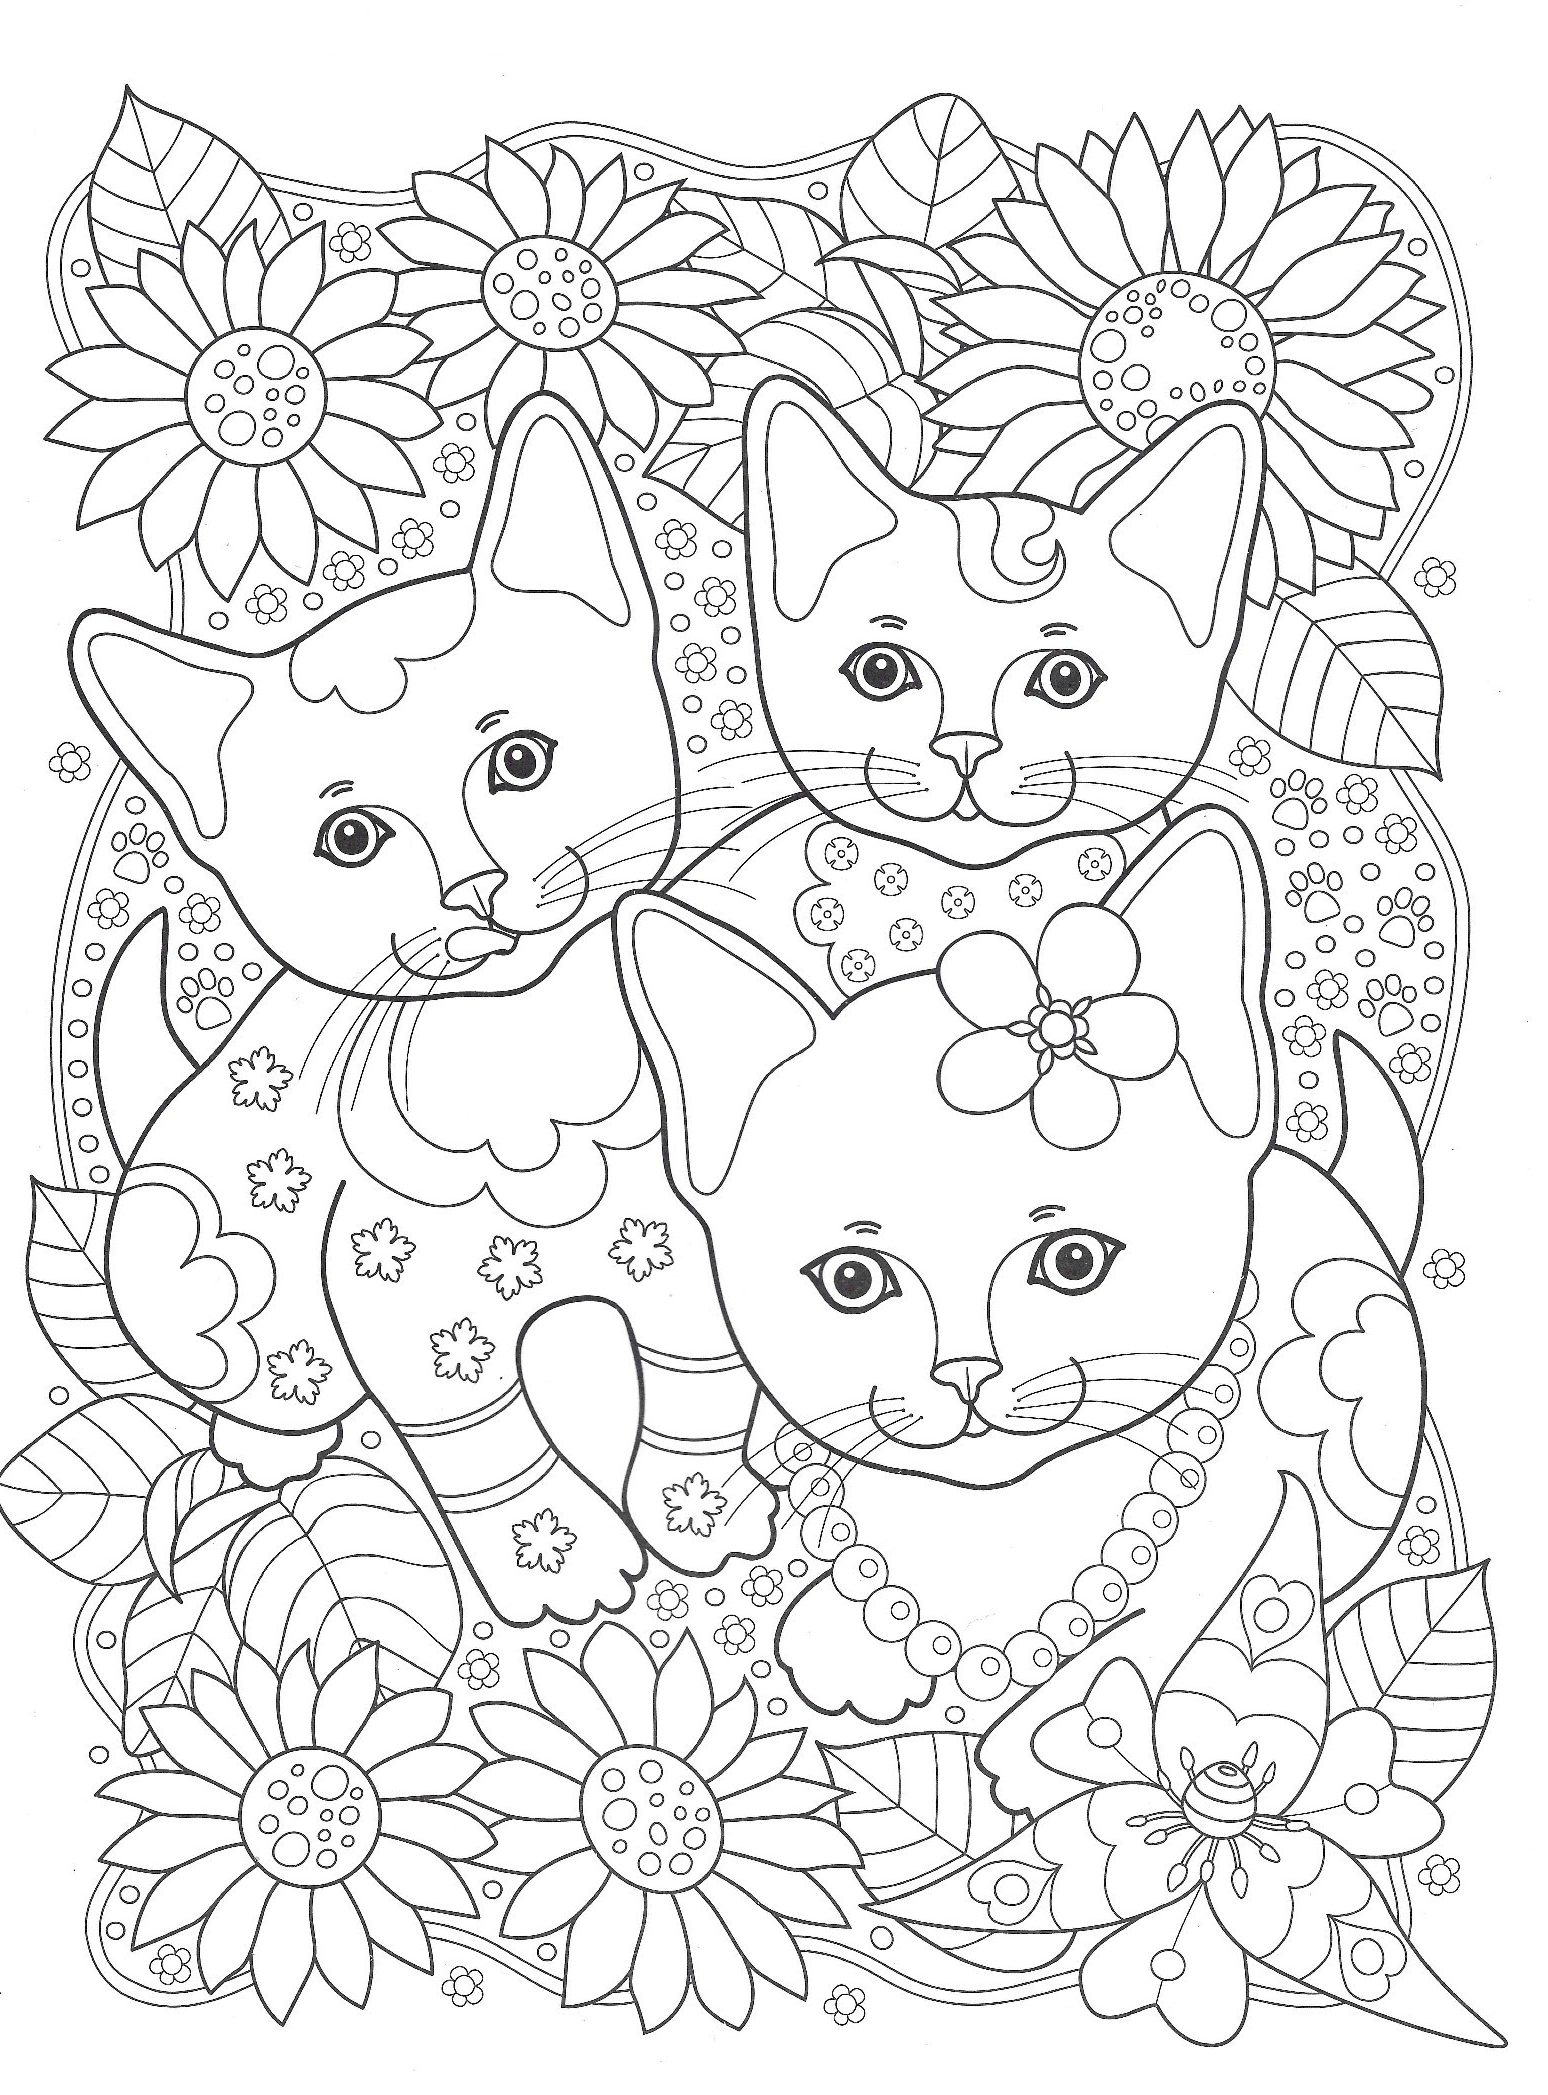 Three cats in the garden